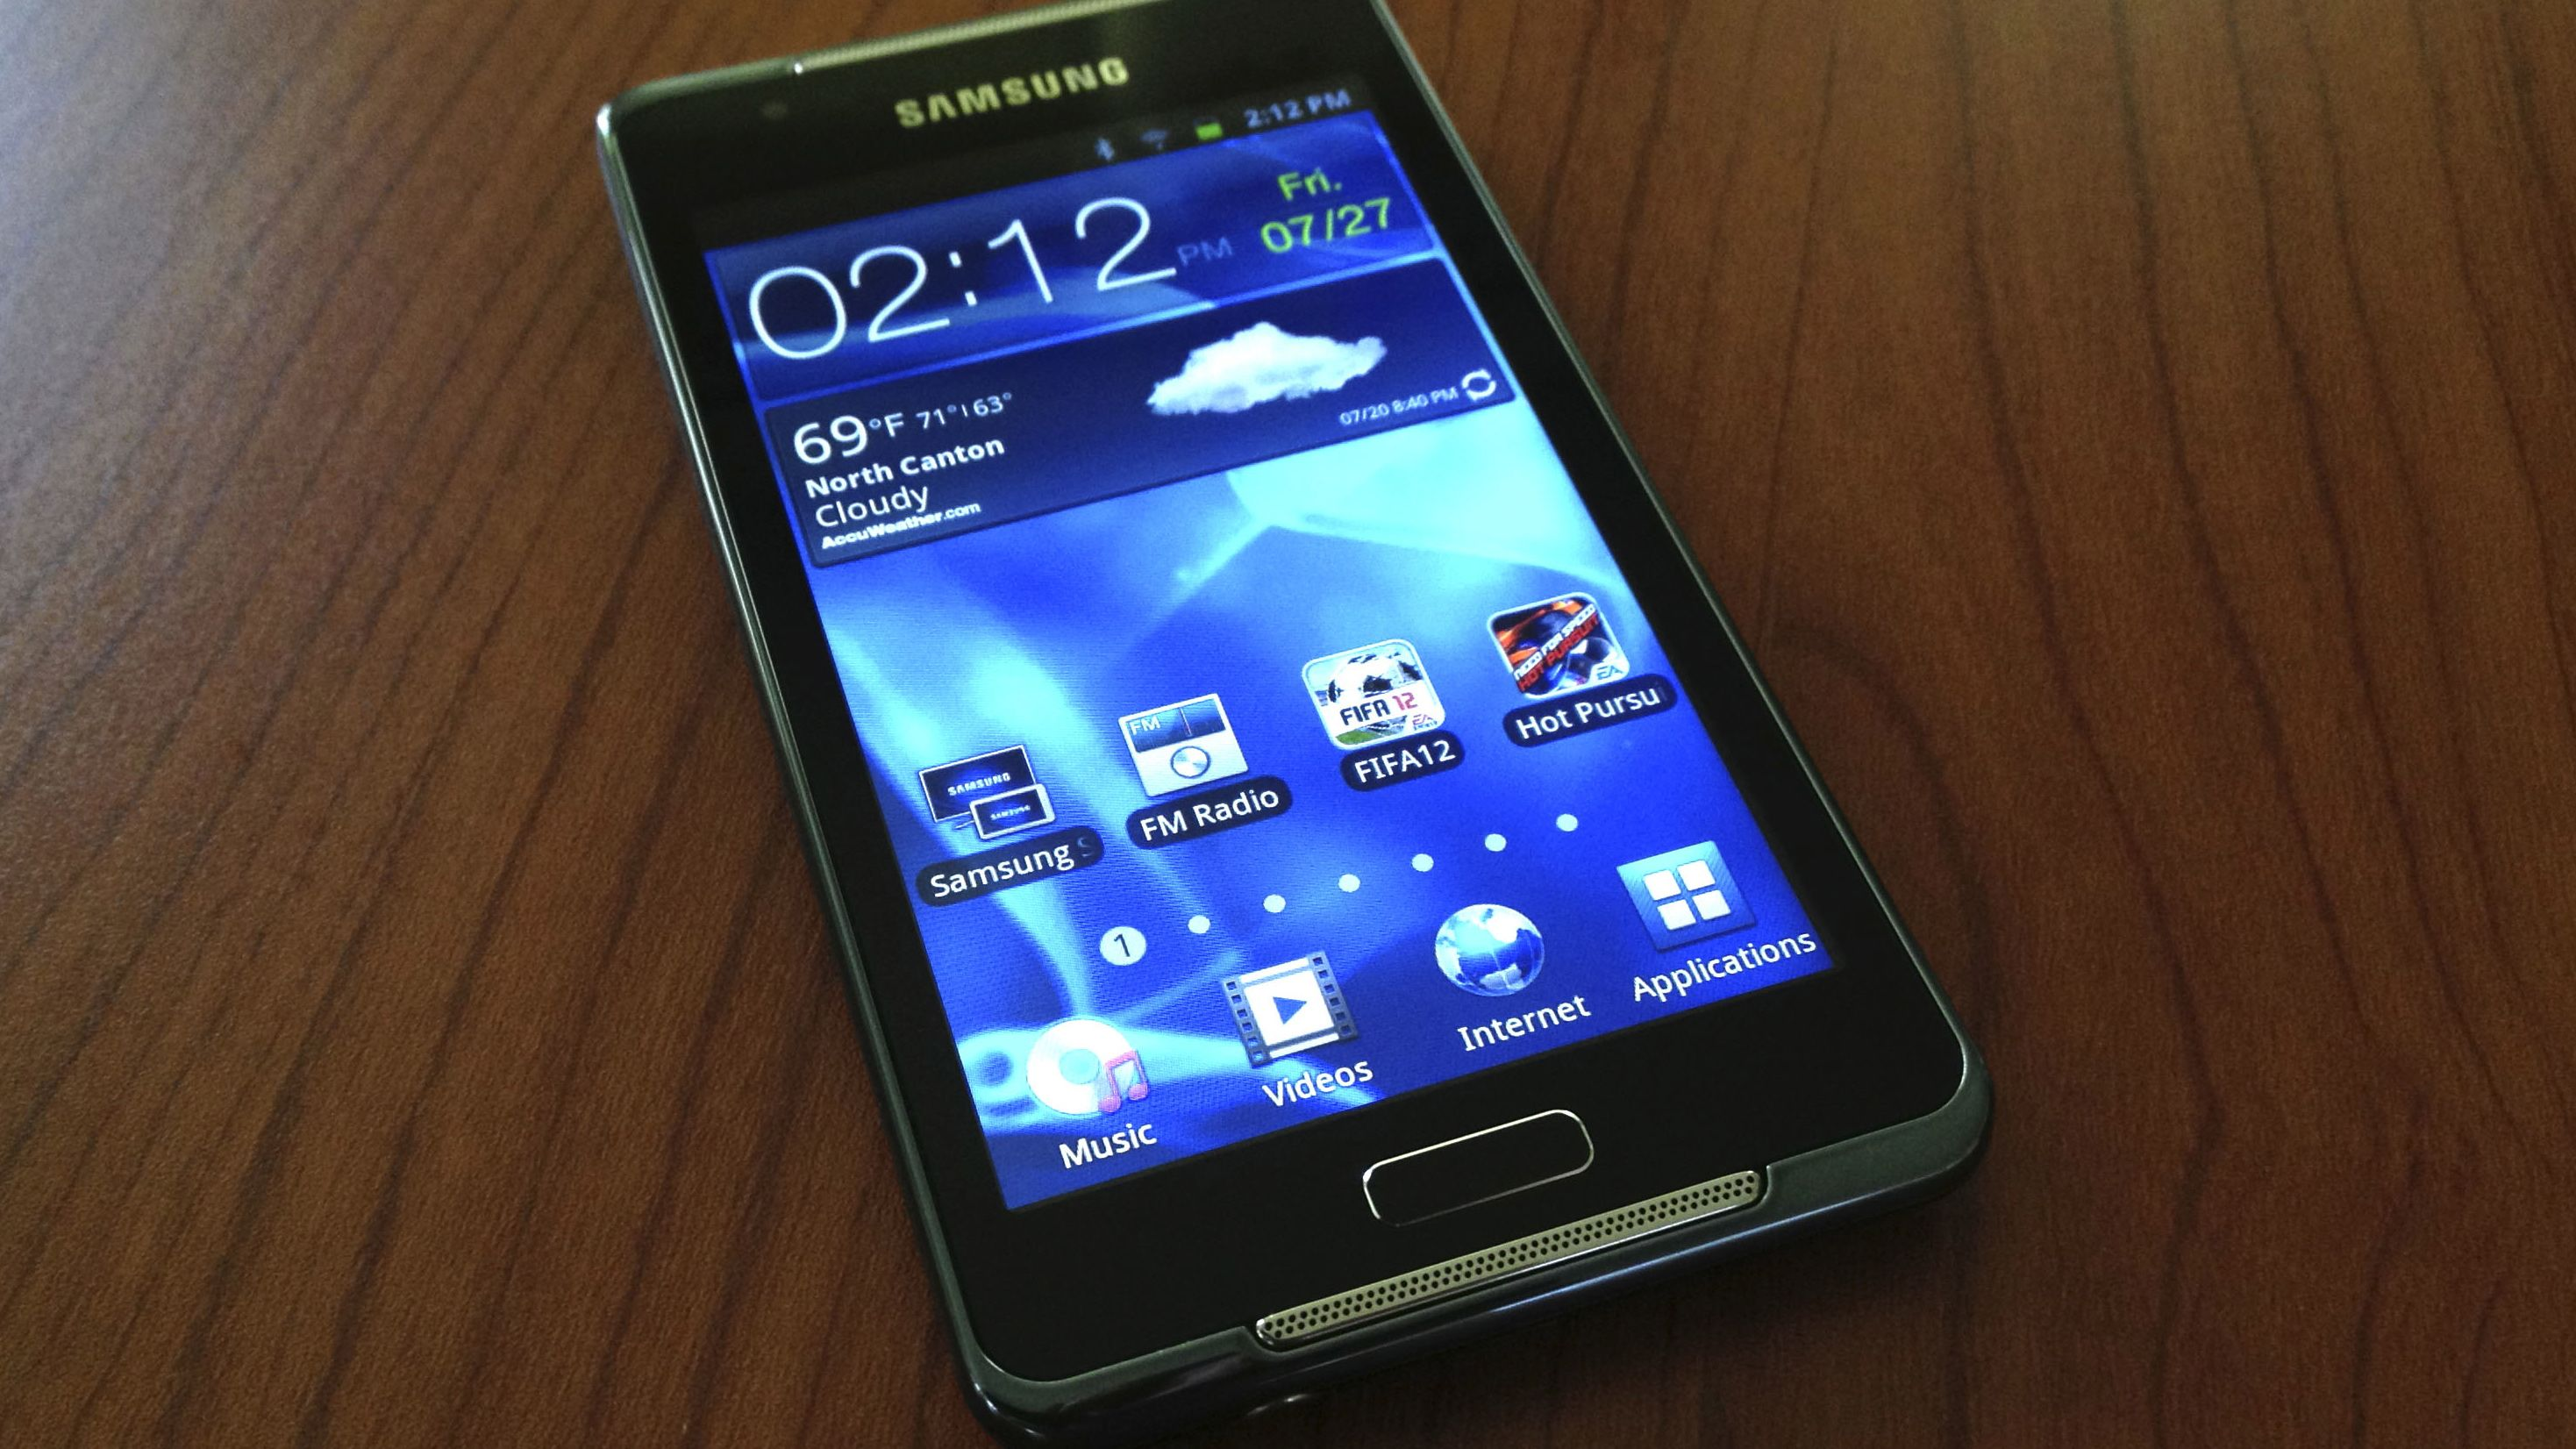 Samsung Galaxy Player 4 2 | TechRadar